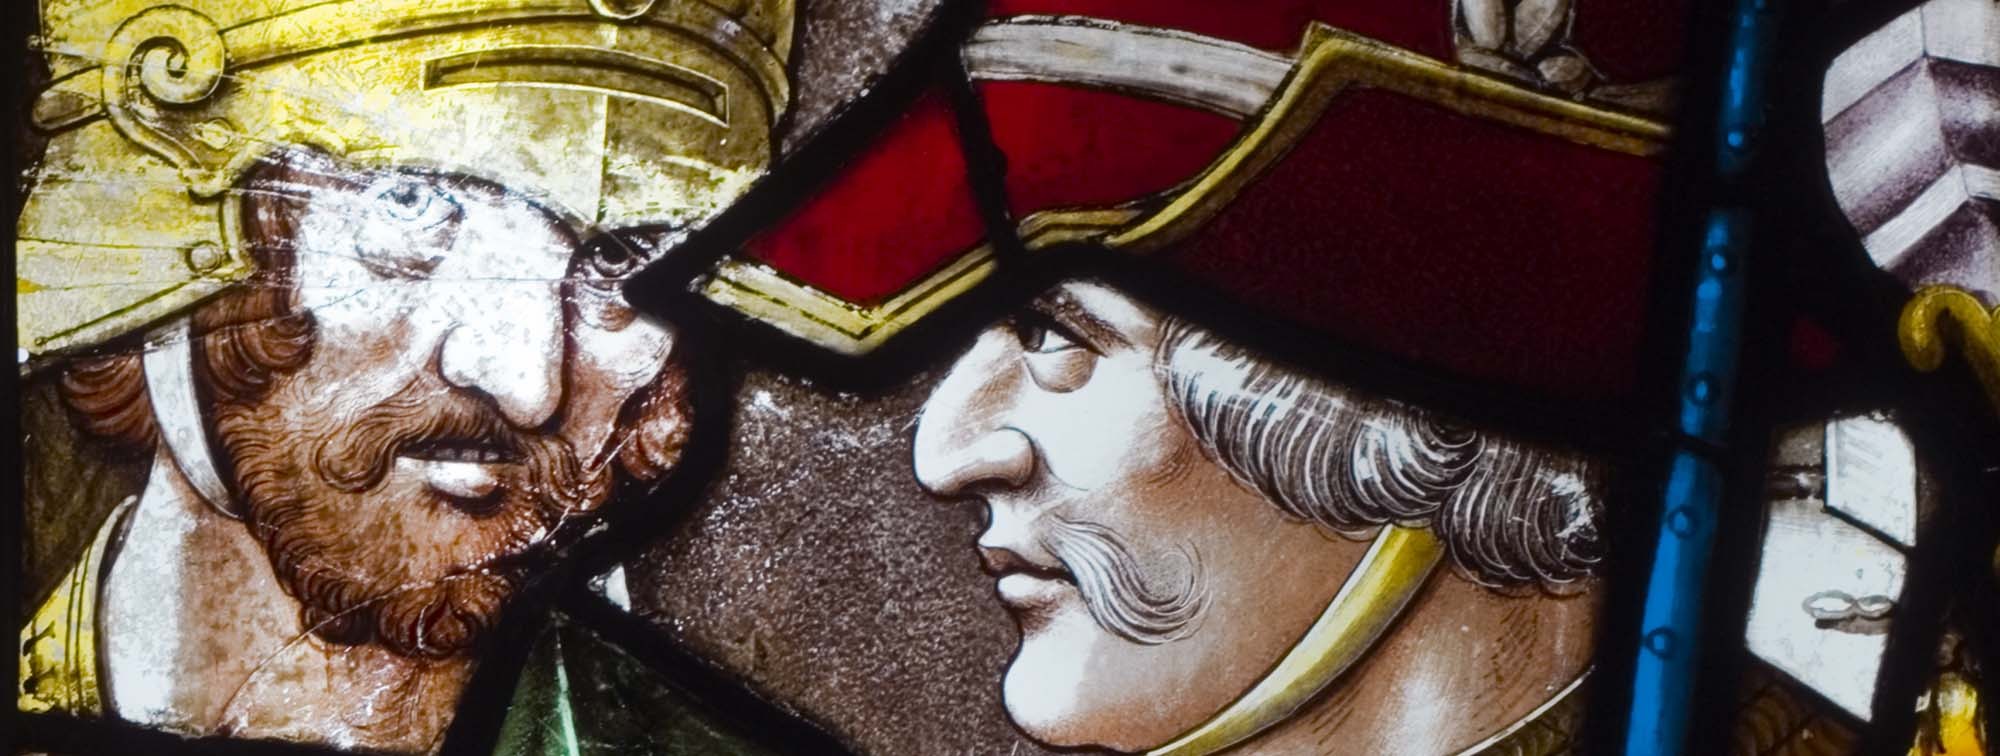 a close up of a tained glass panel showing the faces of two men